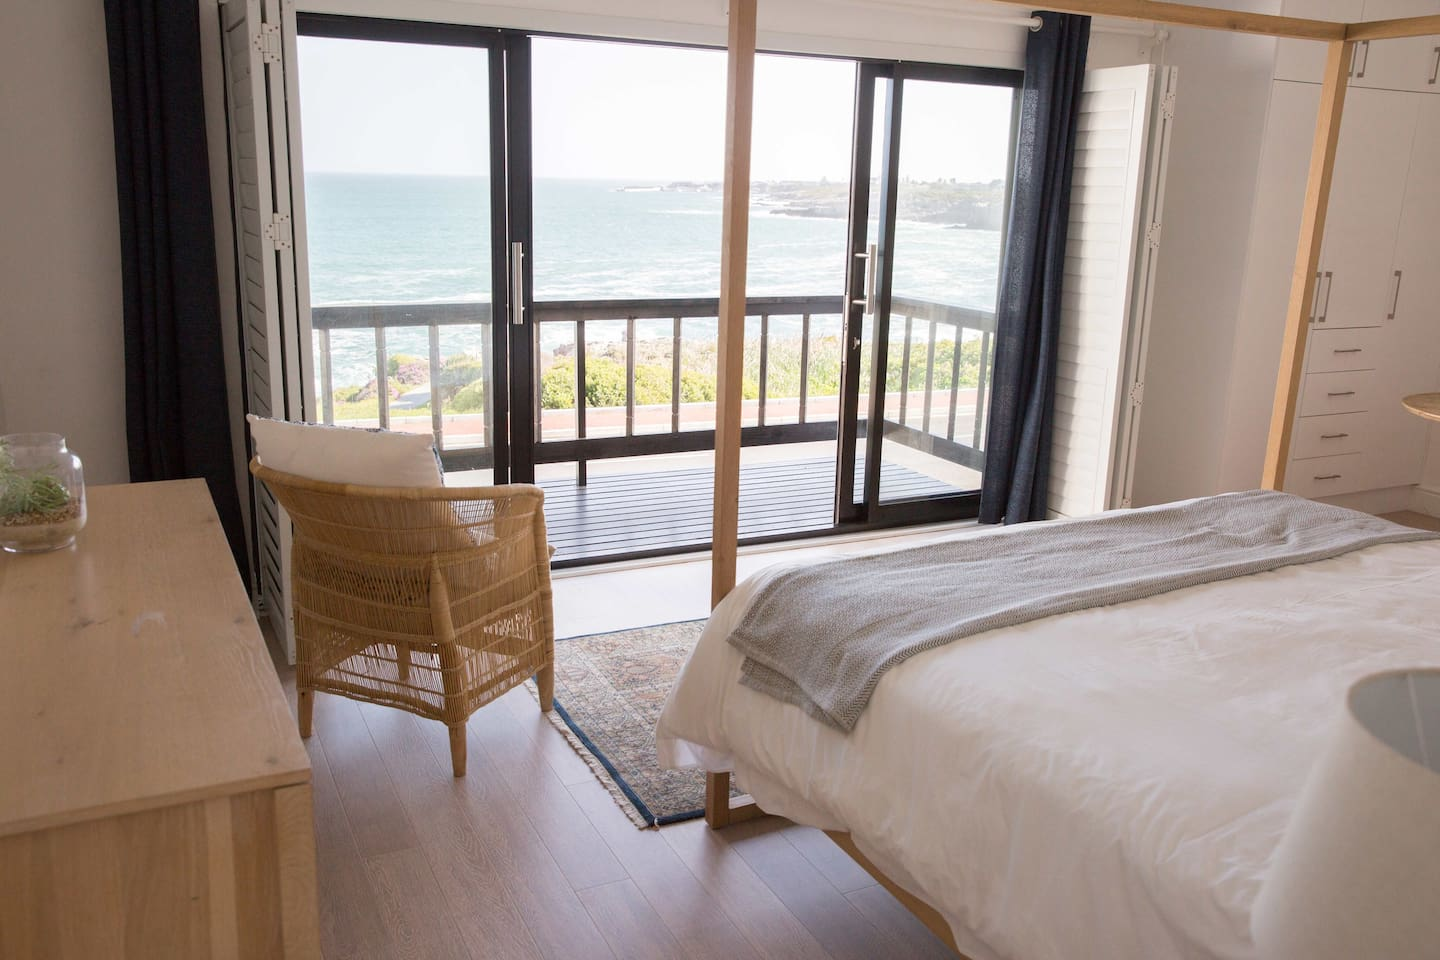 Main bedroom - listen to the ocean and watch the whales from the comfort of your king size bed